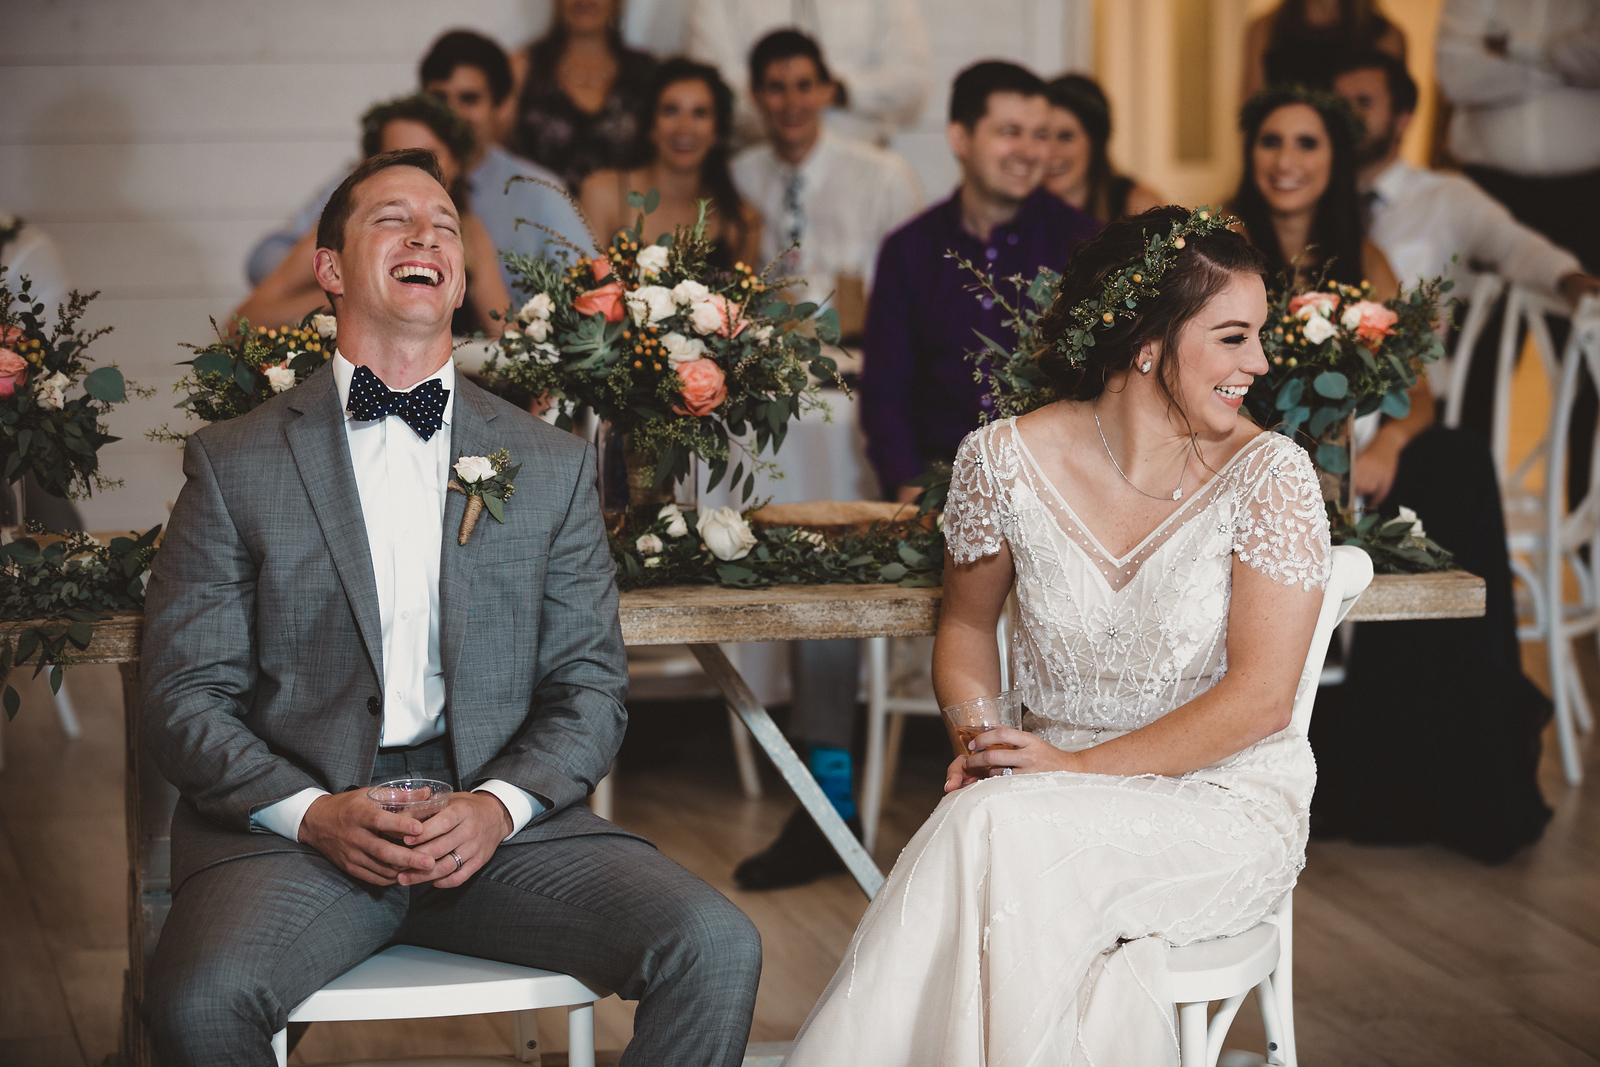 A bride and groom laughing together during wedding speeches